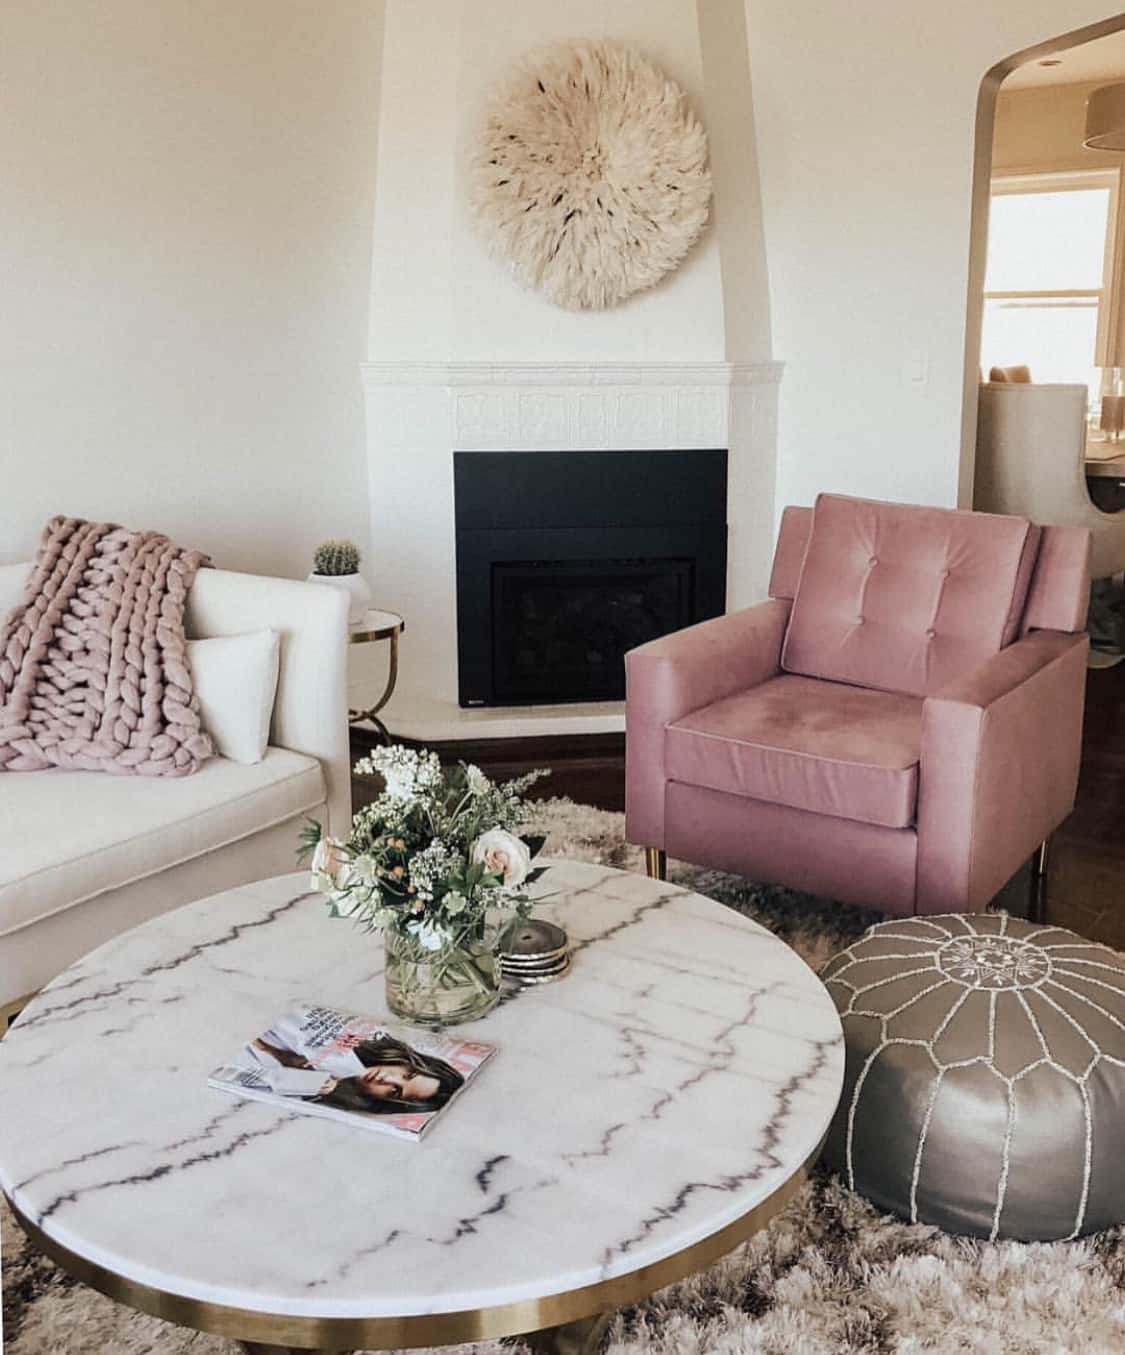 dusty rose chairs Living room decorating ideas you'll want in your home ASAP